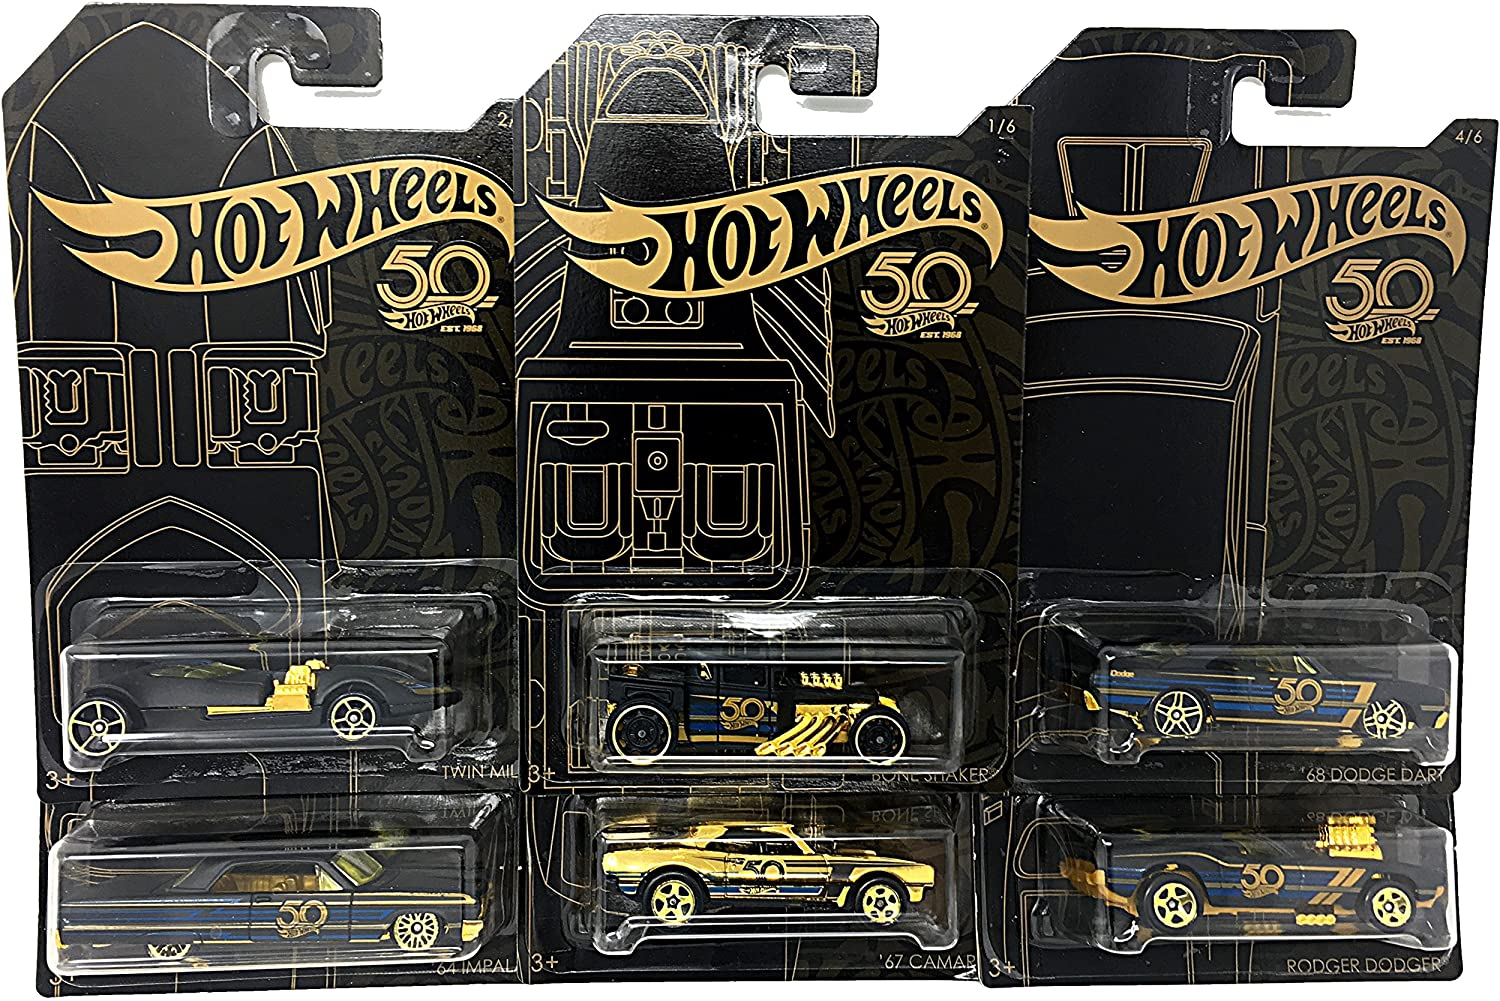 Hot Wheels New 1:64 50th Anniversary Black & Gold Collection - '67 Camaro, Bone Shaker, Twin Mill, Rodger Dodger, Dodge Dart, 64 Impala & Set of 6pcs Diecast Model Car by Hotwheels